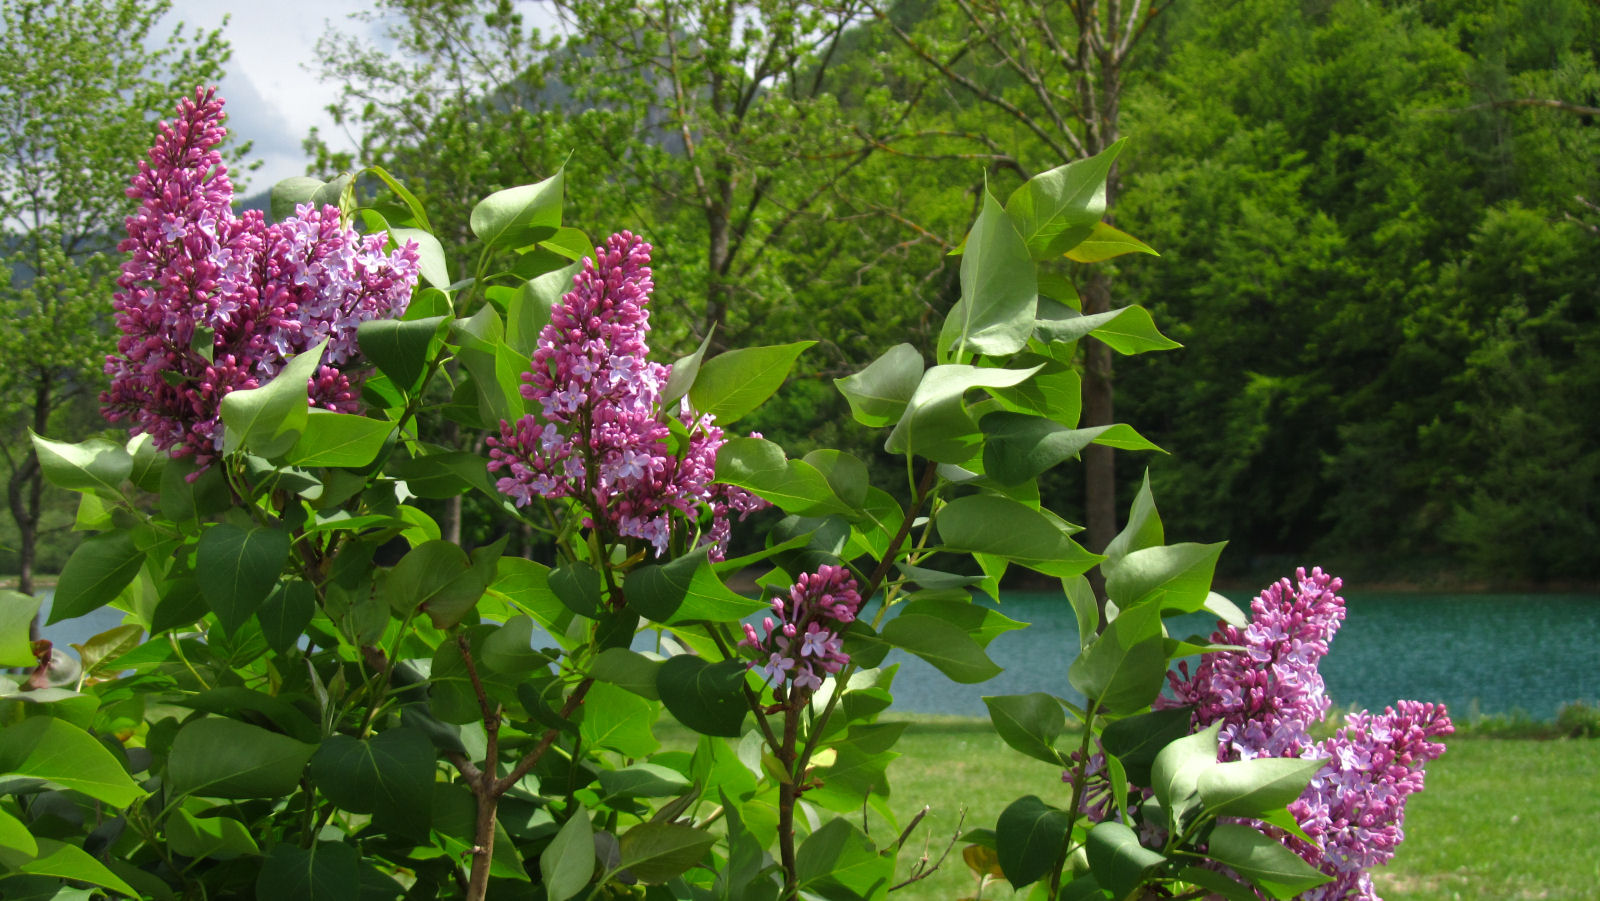 Blooming Lilacs and the Zavrsnica reservoir in the background